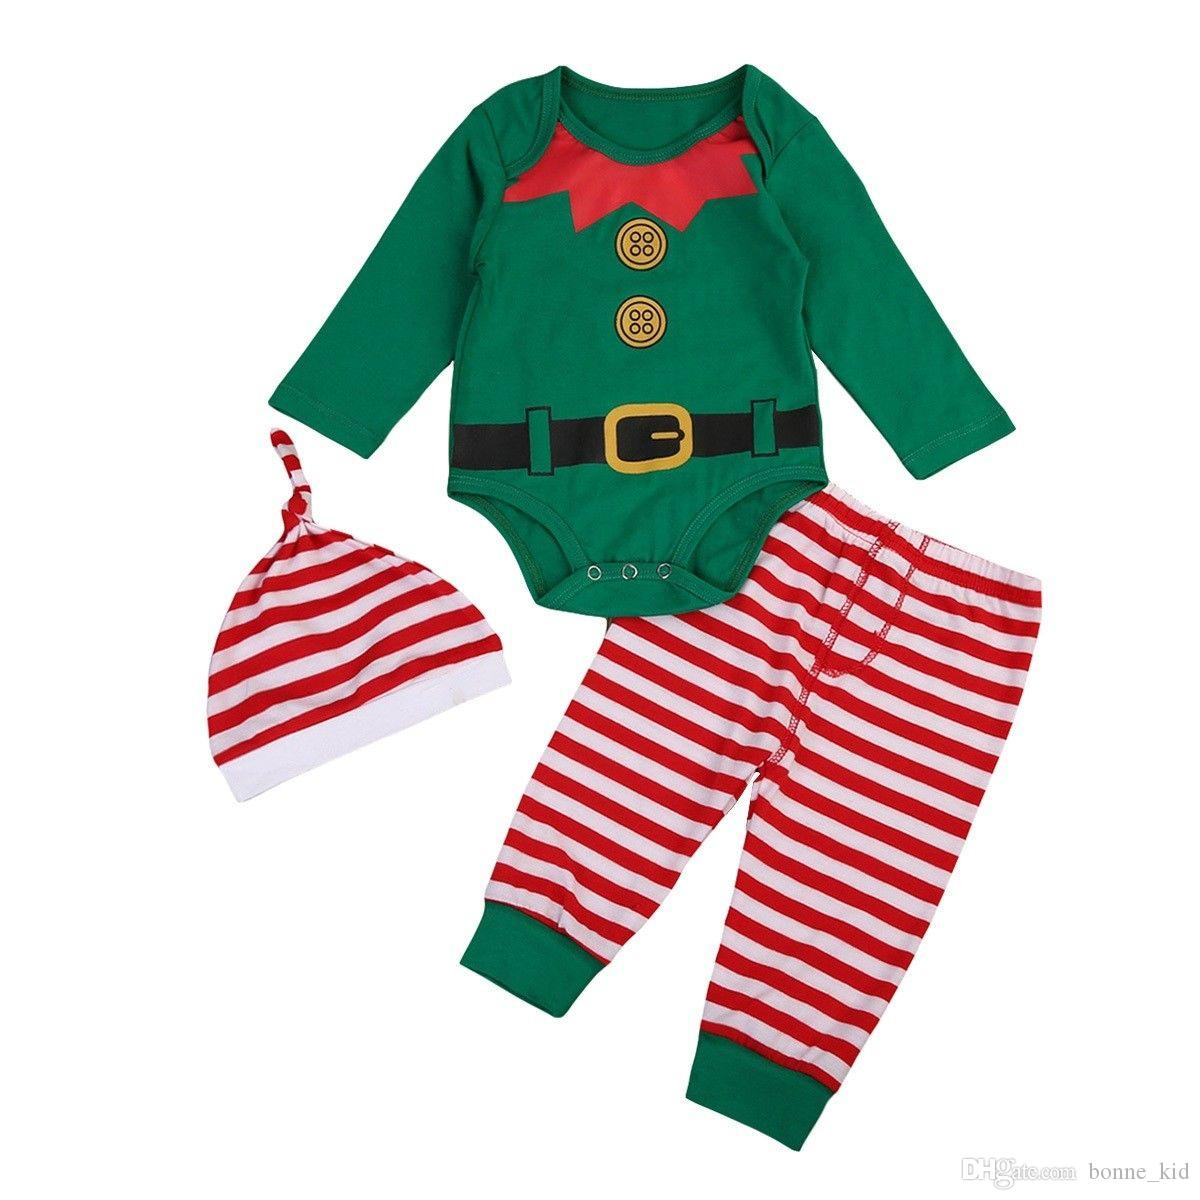 7b2f0d7432e2 2019 Christmas Gift For Baby Boy Romper+Pants+Hat A Set Striped Kid  Clothing Toddler Suit Boy Girl XMAS Green Oufits 0 24M From Bonne kid